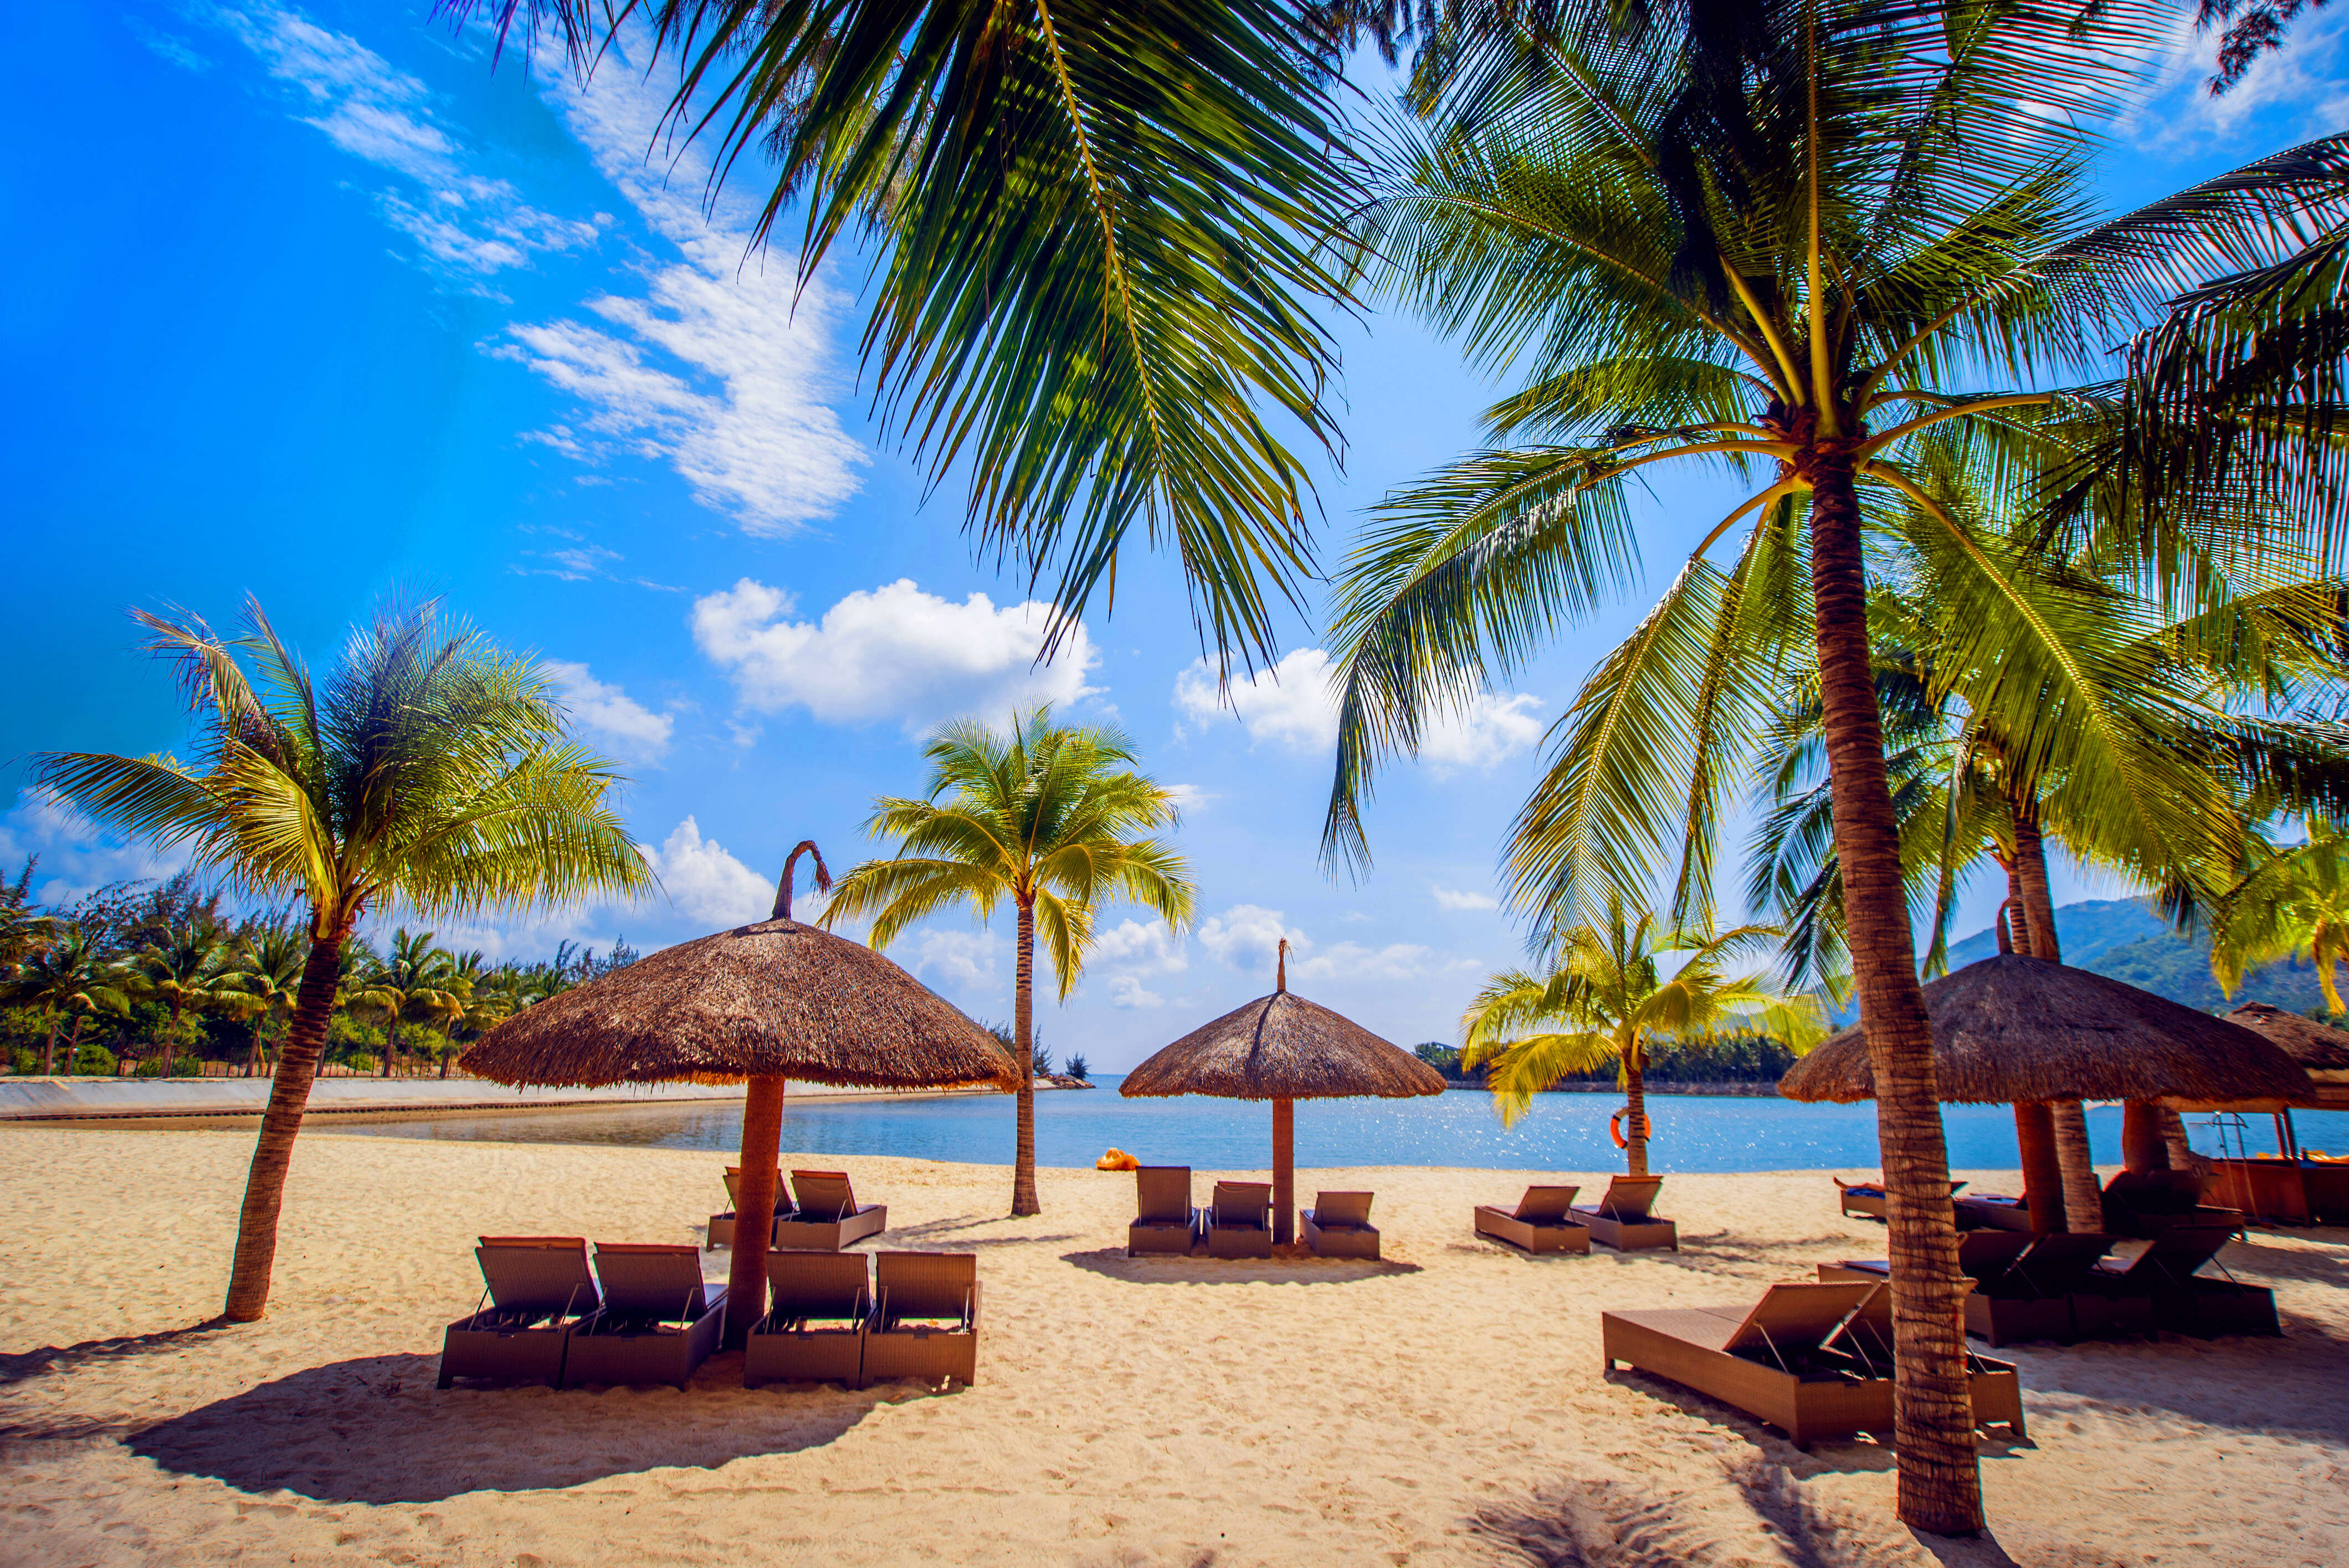 Save up to 41% at Hilton Hotels & Resorts in Hawaii